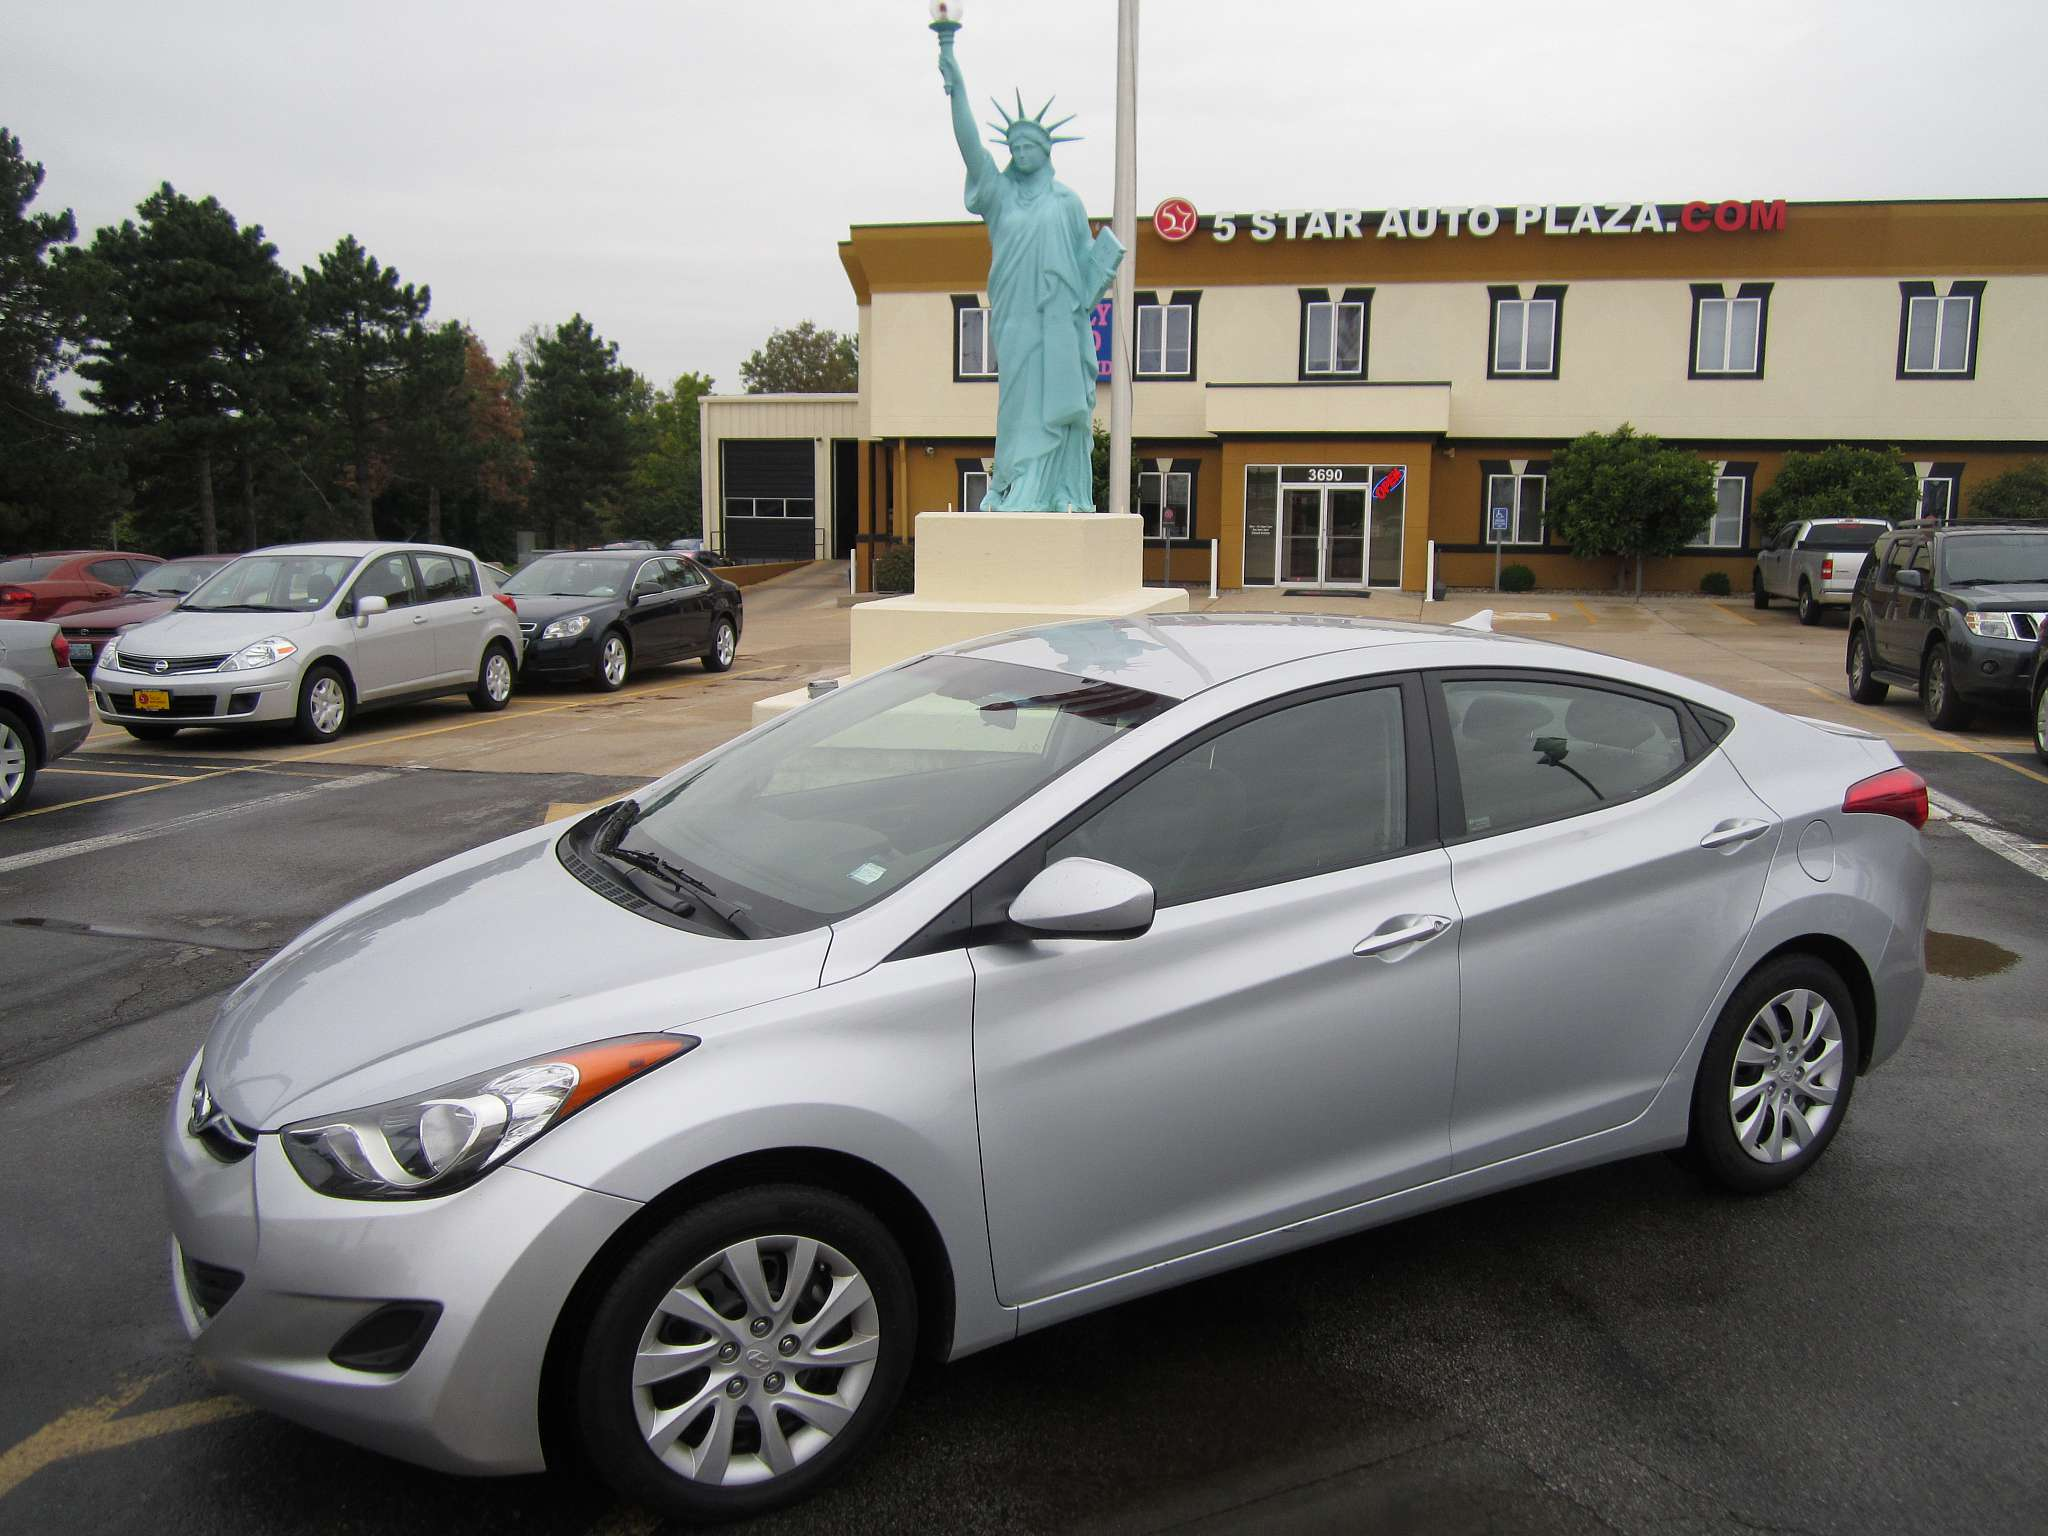 pre owned hyundai cars for sale in st louis